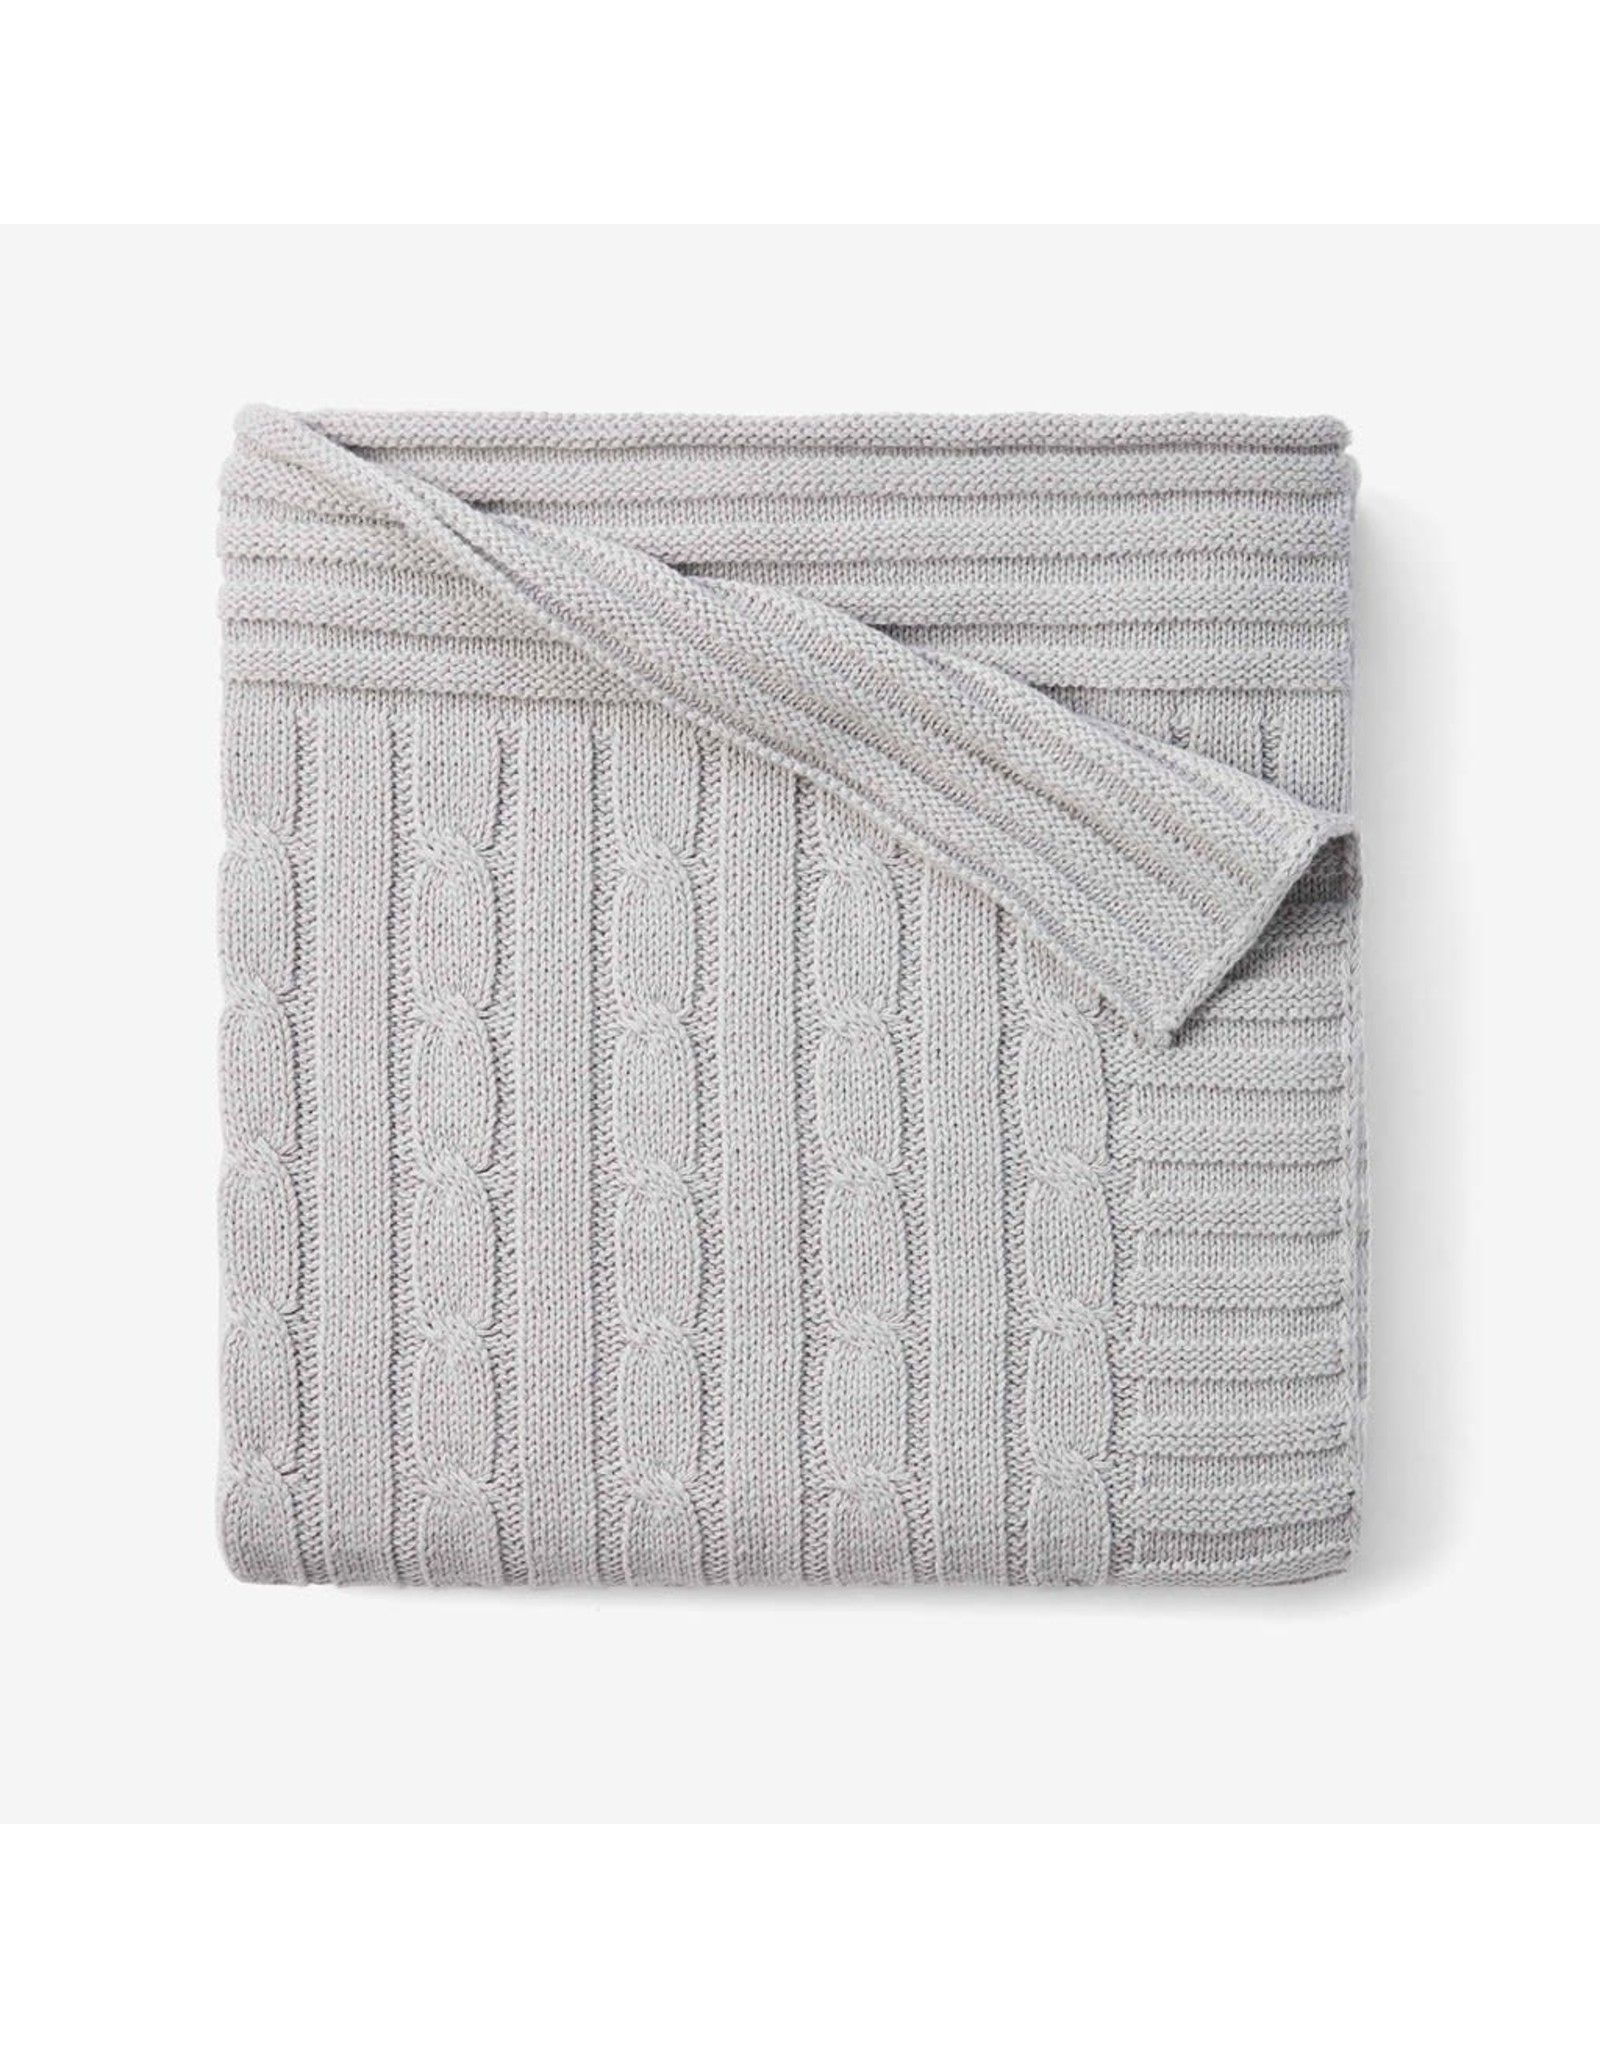 Child To Cherish Child To Cherish Cable Knit Blanket, Grey